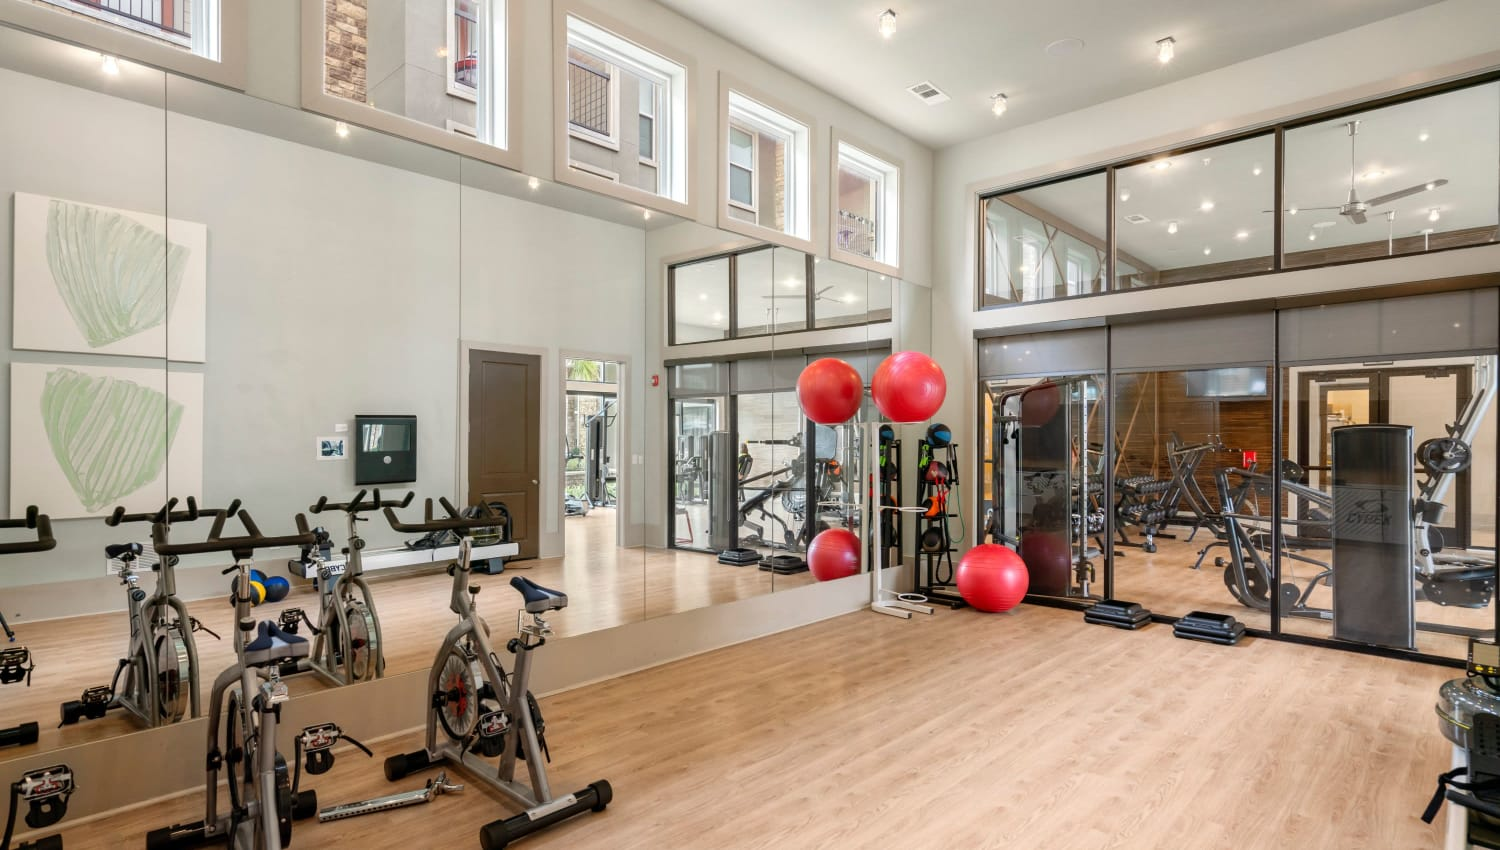 Yoga and spin studio at Olympus Grand Crossing in Katy, Texas